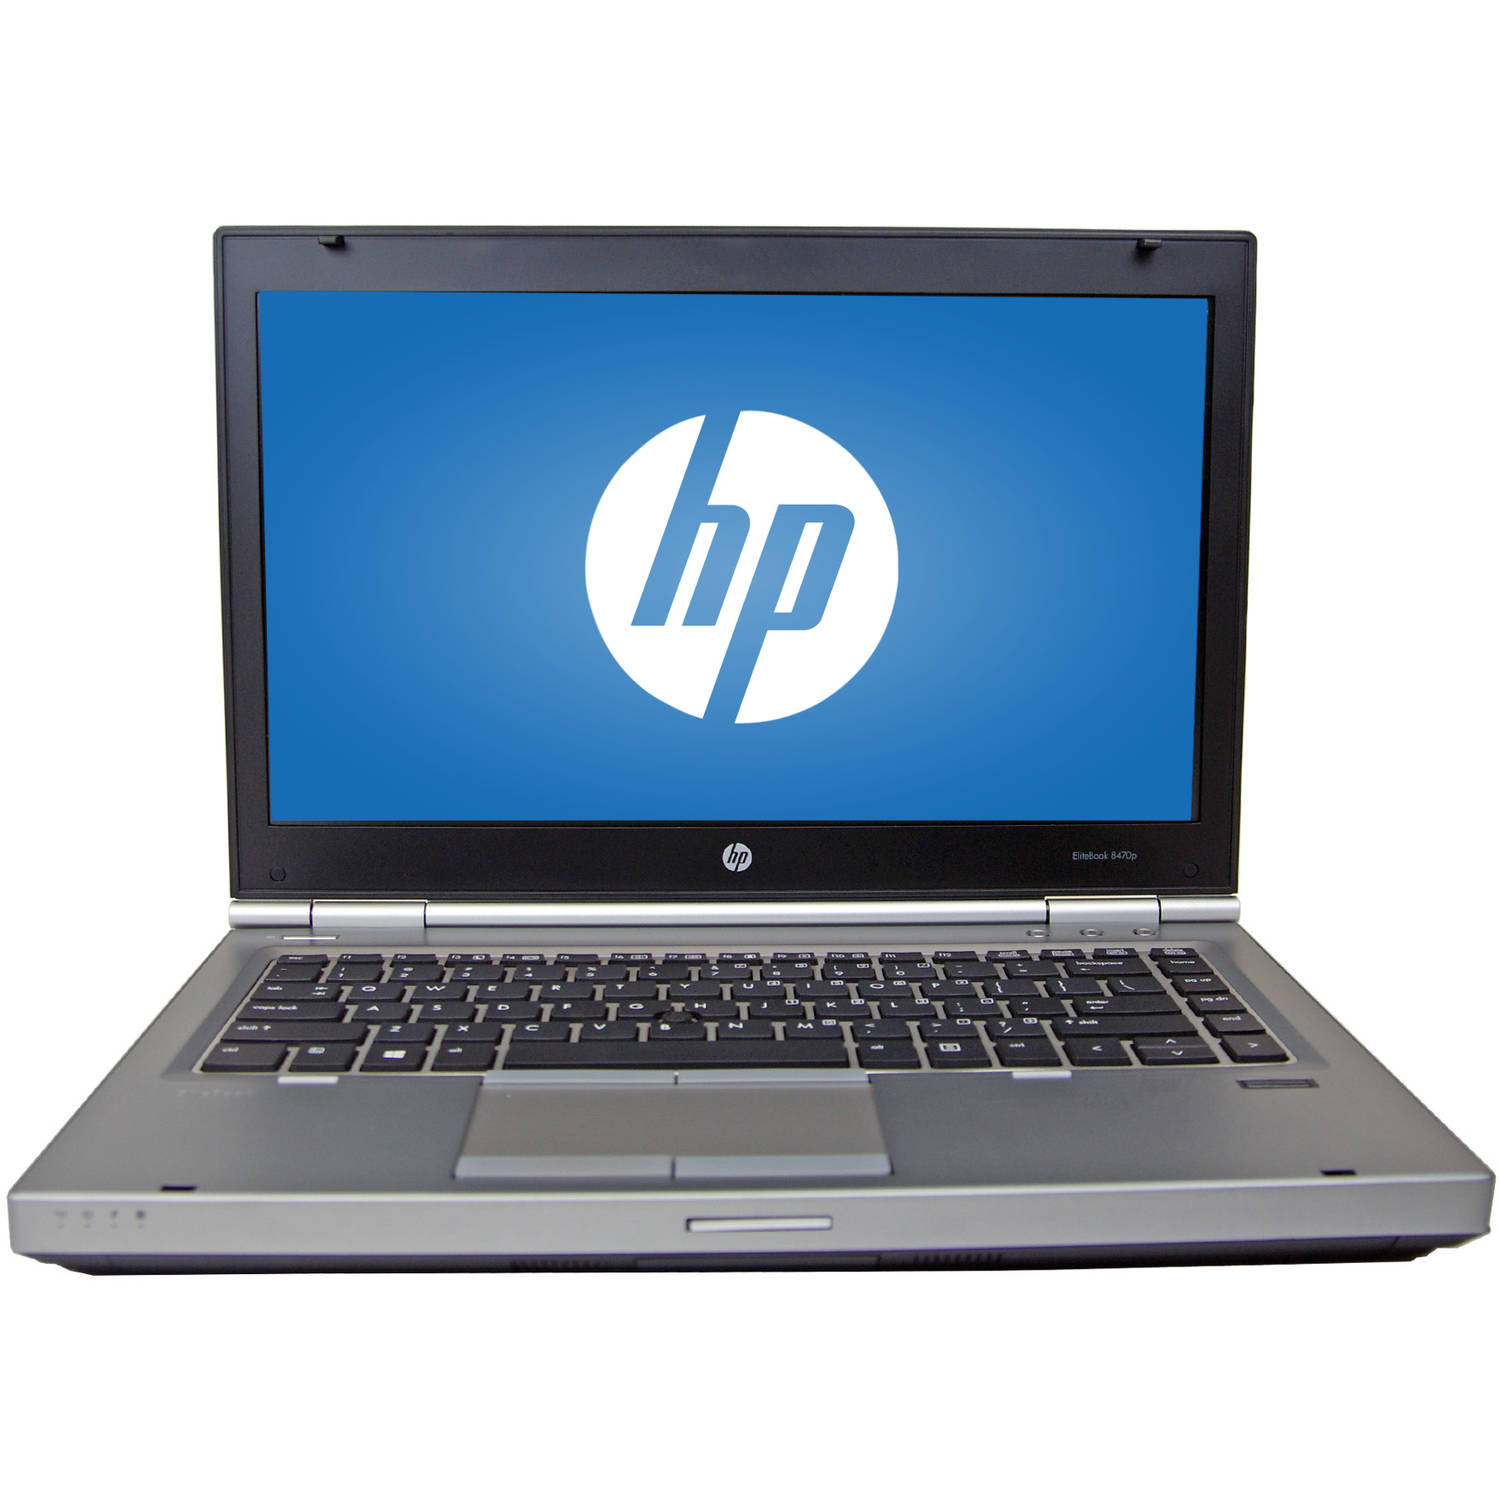 "Refurbished HP Silver 14"" Elitebook 8470P Laptop PC with Intel Core i5-3320M Processor, 8GB Memory, 256GB SSD and Windows 7 Professional"